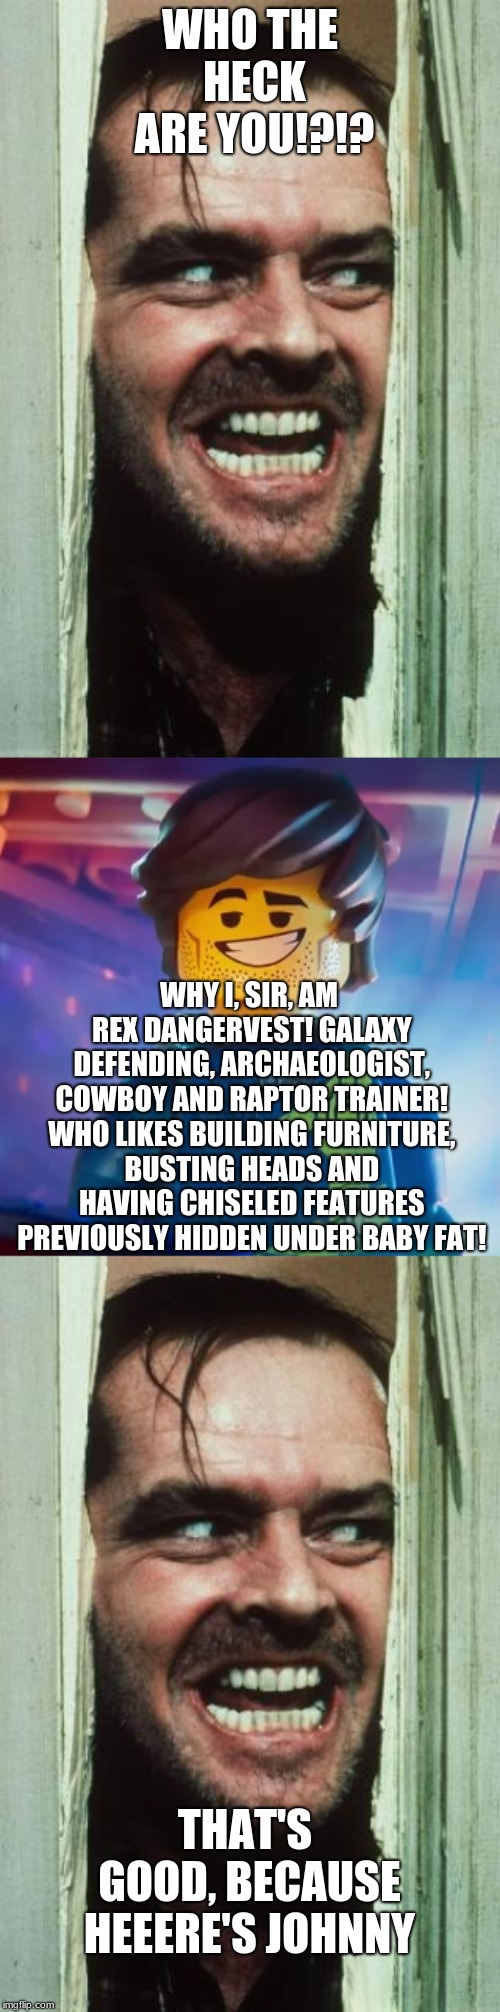 Johnny meets Rex Dangervest | WHO THE HECK ARE YOU!?!? WHY I, SIR, AM REX DANGERVEST! GALAXY DEFENDING, ARCHAEOLOGIST, COWBOY AND RAPTOR TRAINER! WHO LIKES BUILDING FURNI | image tagged in memes,here's johnny,the lego movie,the shining,fun | made w/ Imgflip meme maker